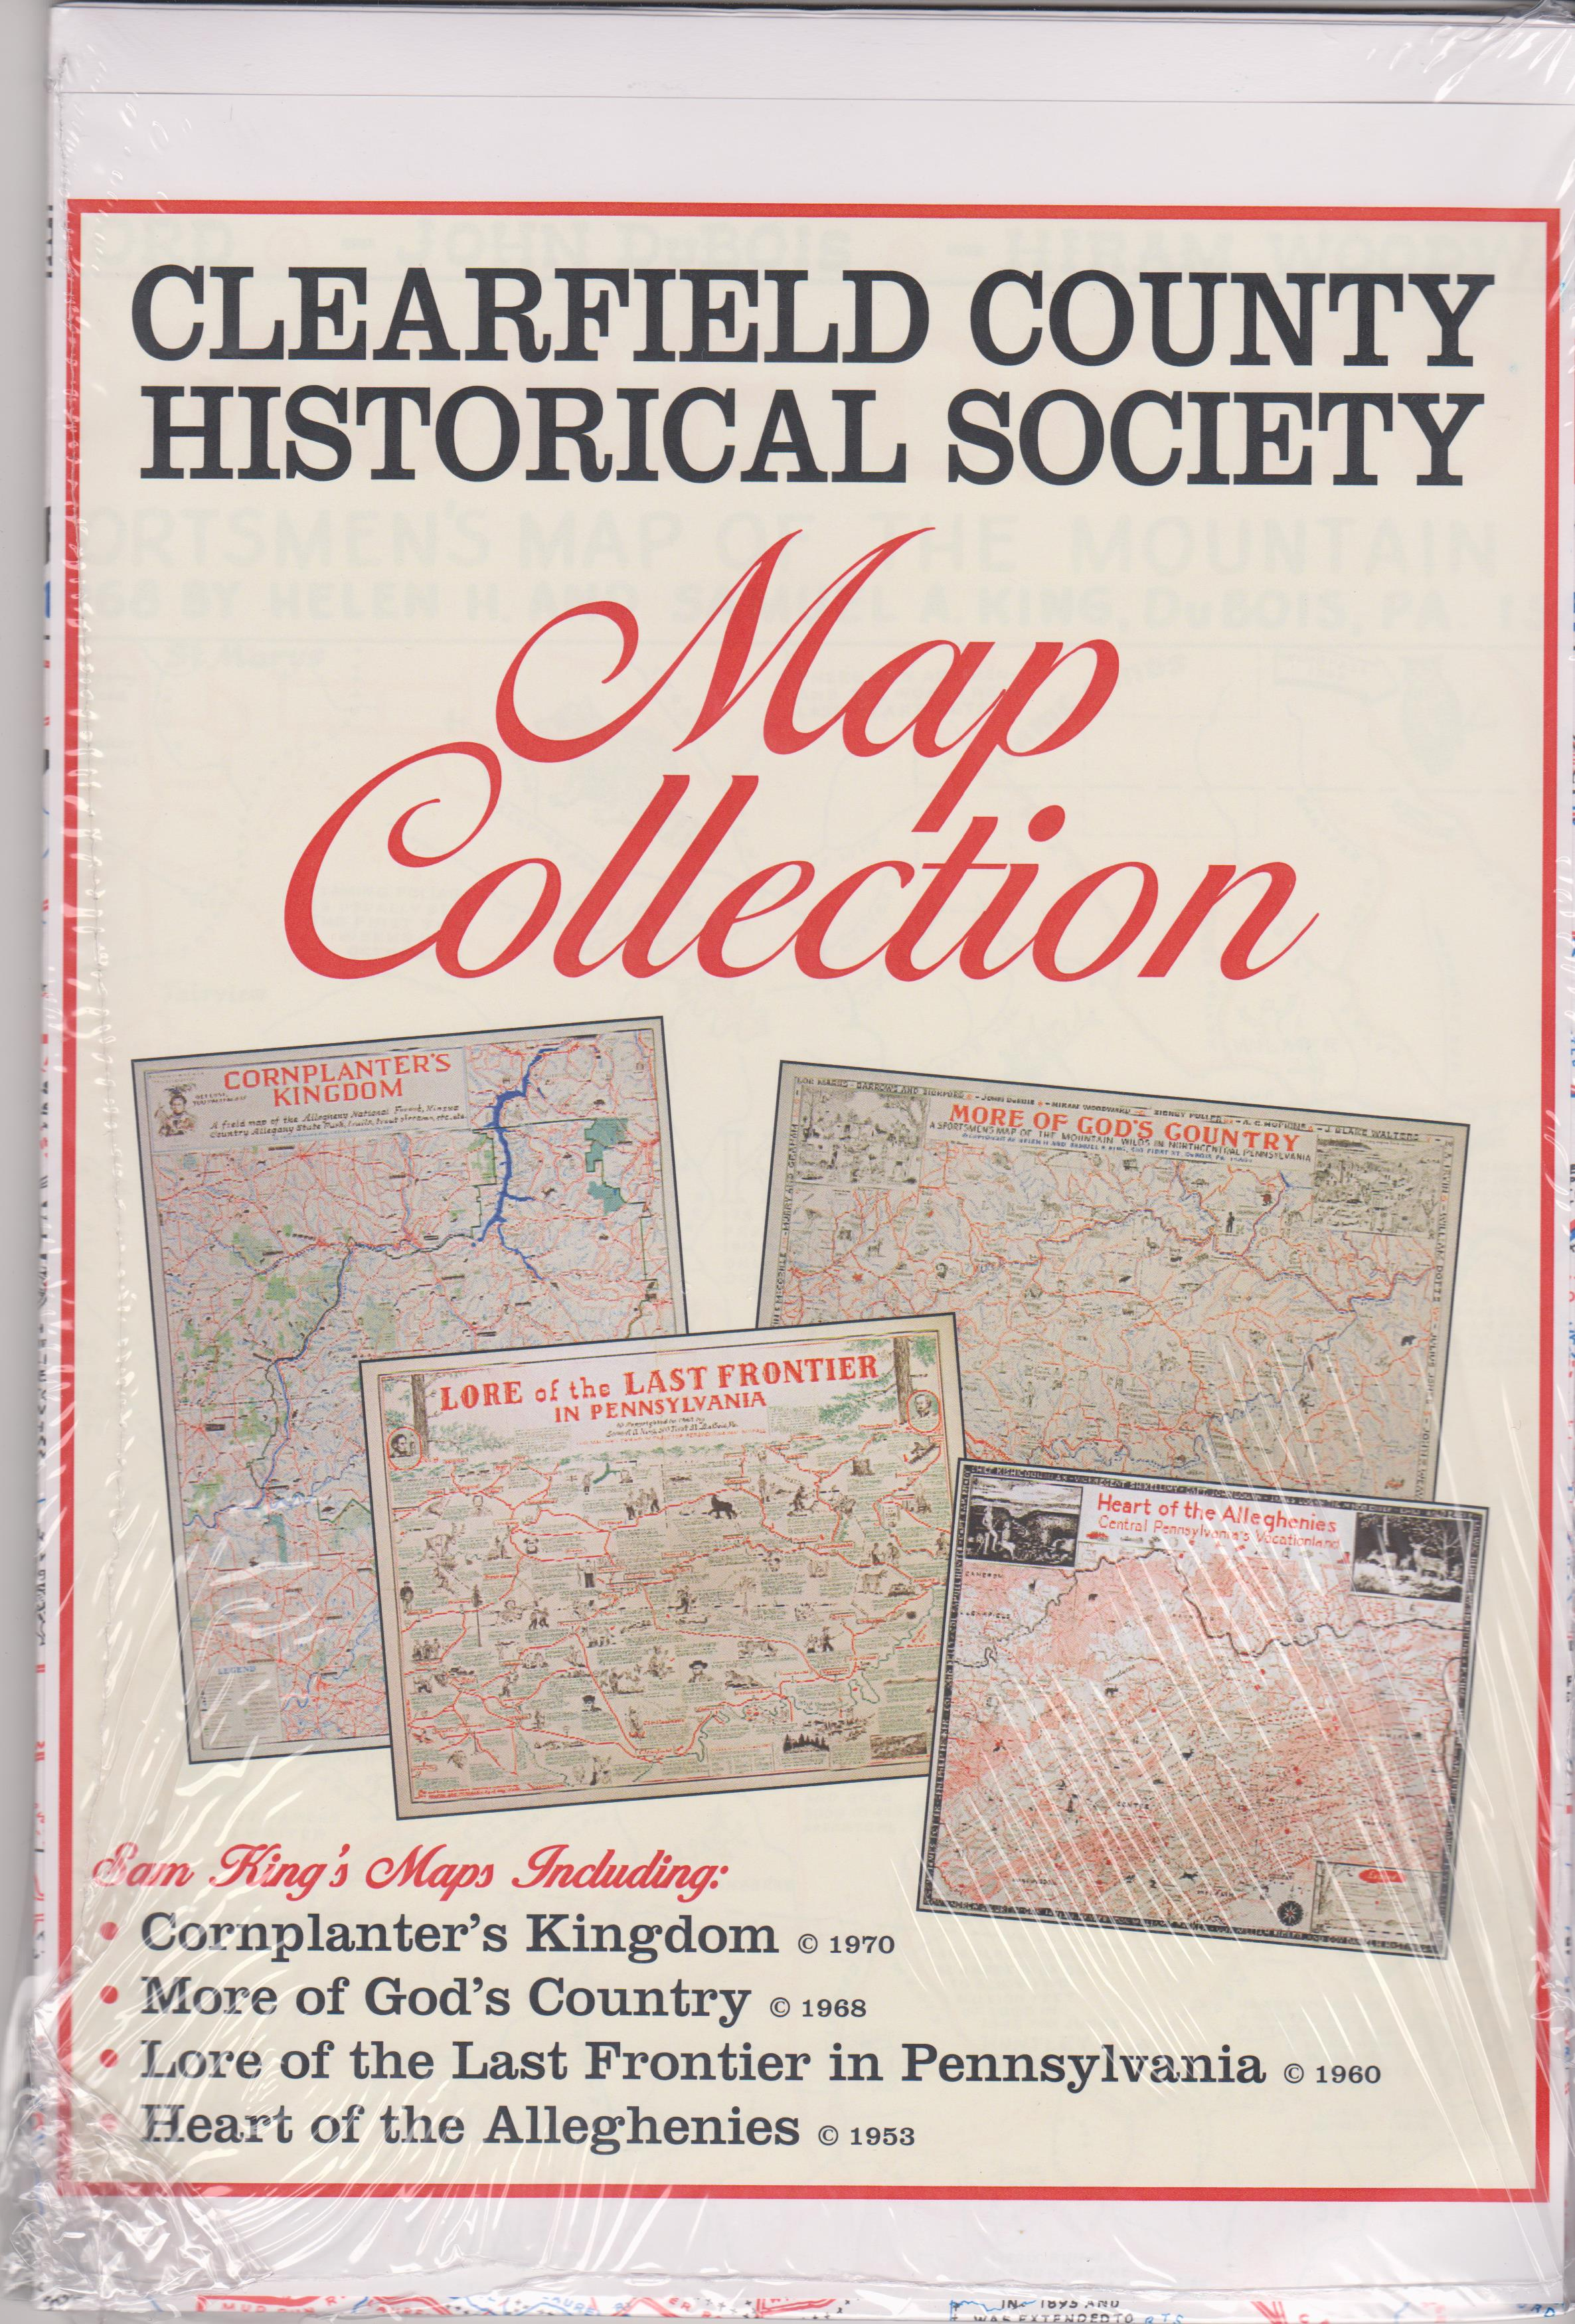 Sam King's Maps - Published by the Clearfield County Historical Society